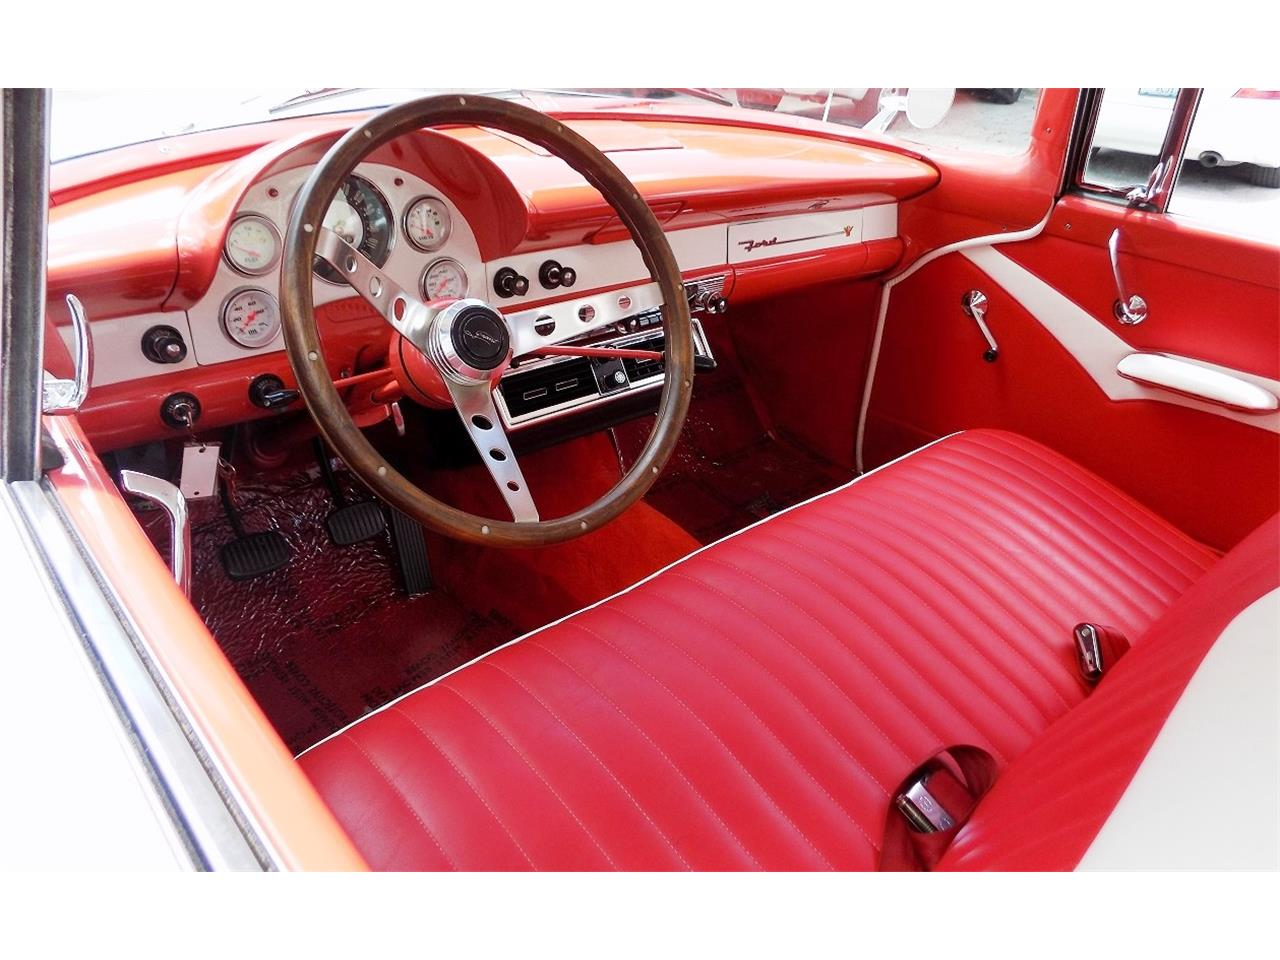 Large Picture of Classic 1956 Victoria located in POMPANO BEACH Florida Offered by Cool Cars - LHFB